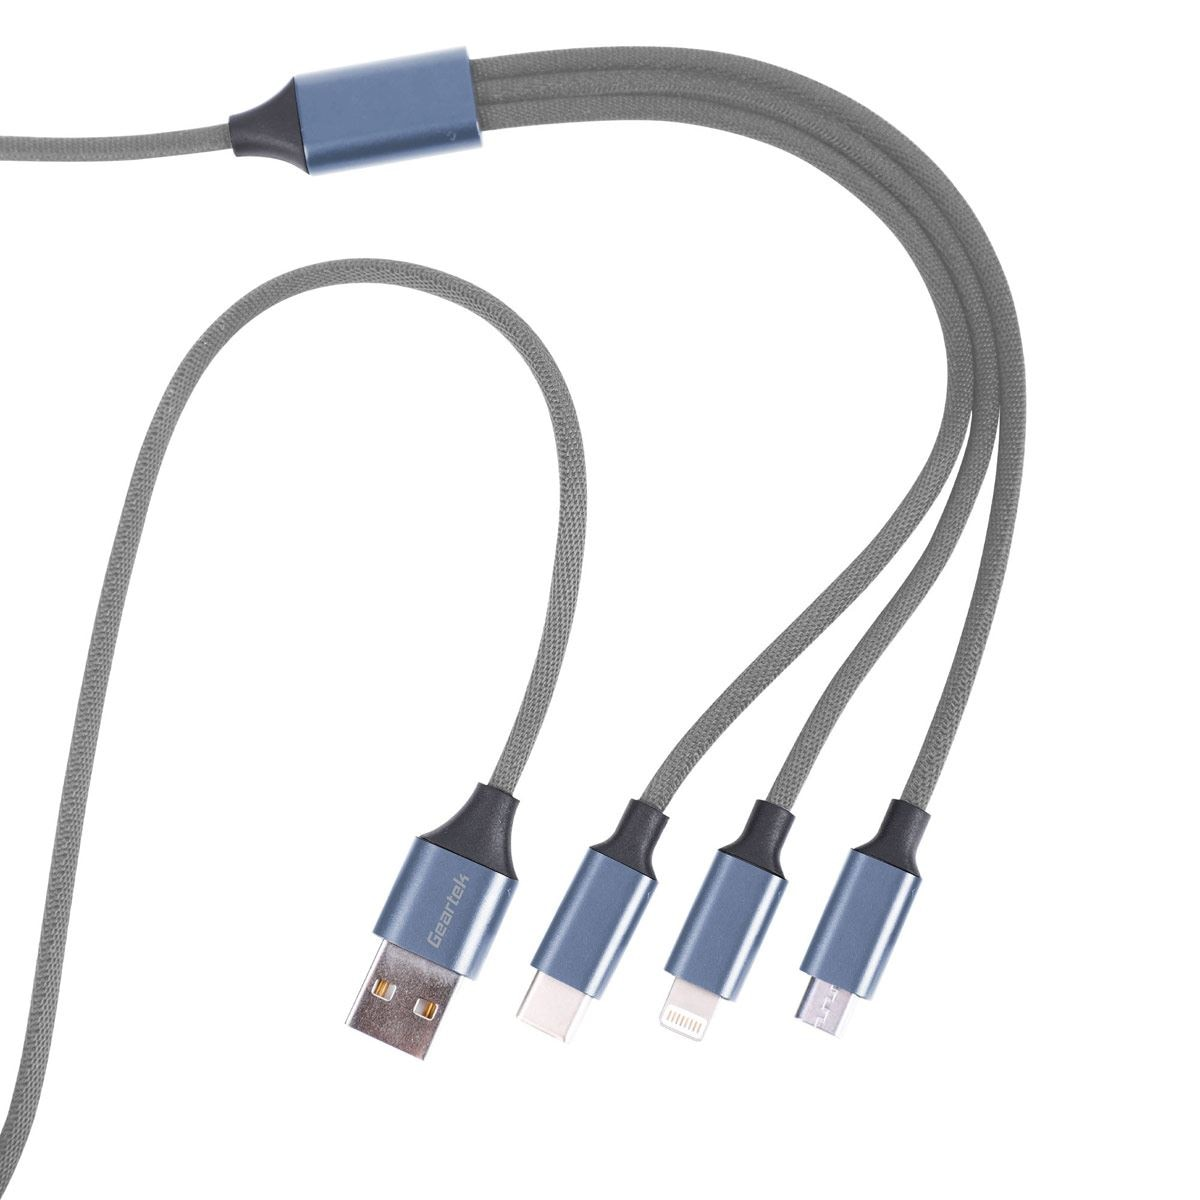 Cable 3 en 1 Micro / Type C / Lightning Geartek